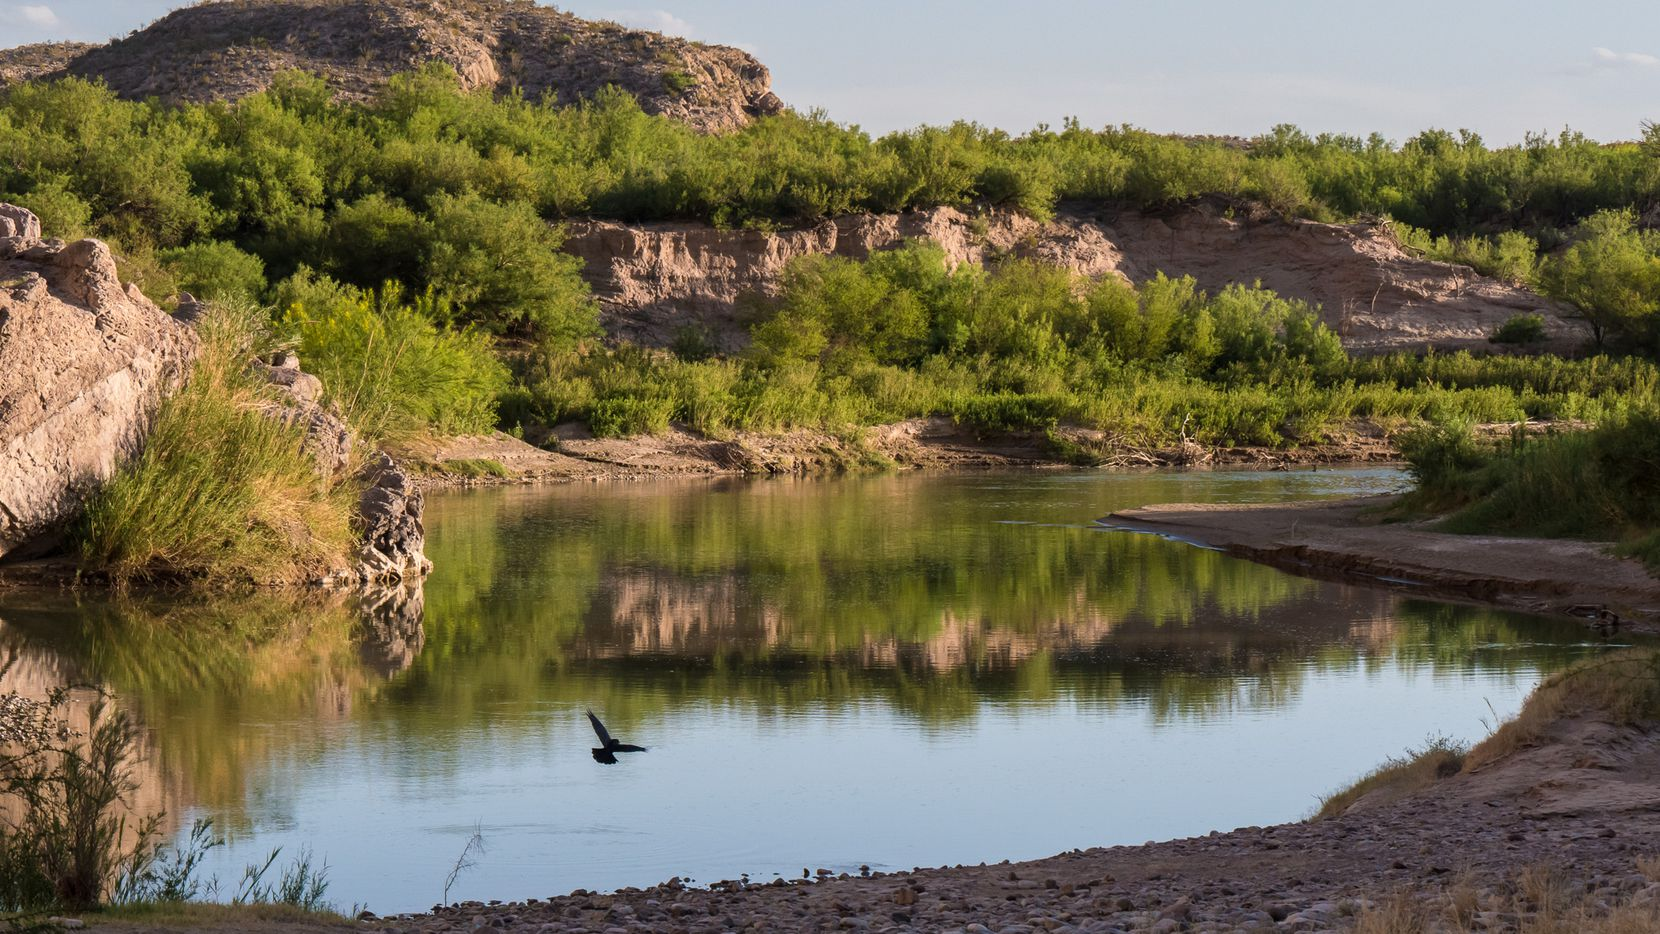 The Rio Grande flows near the entry to Boquillas Canyon in Big Bend National Park.